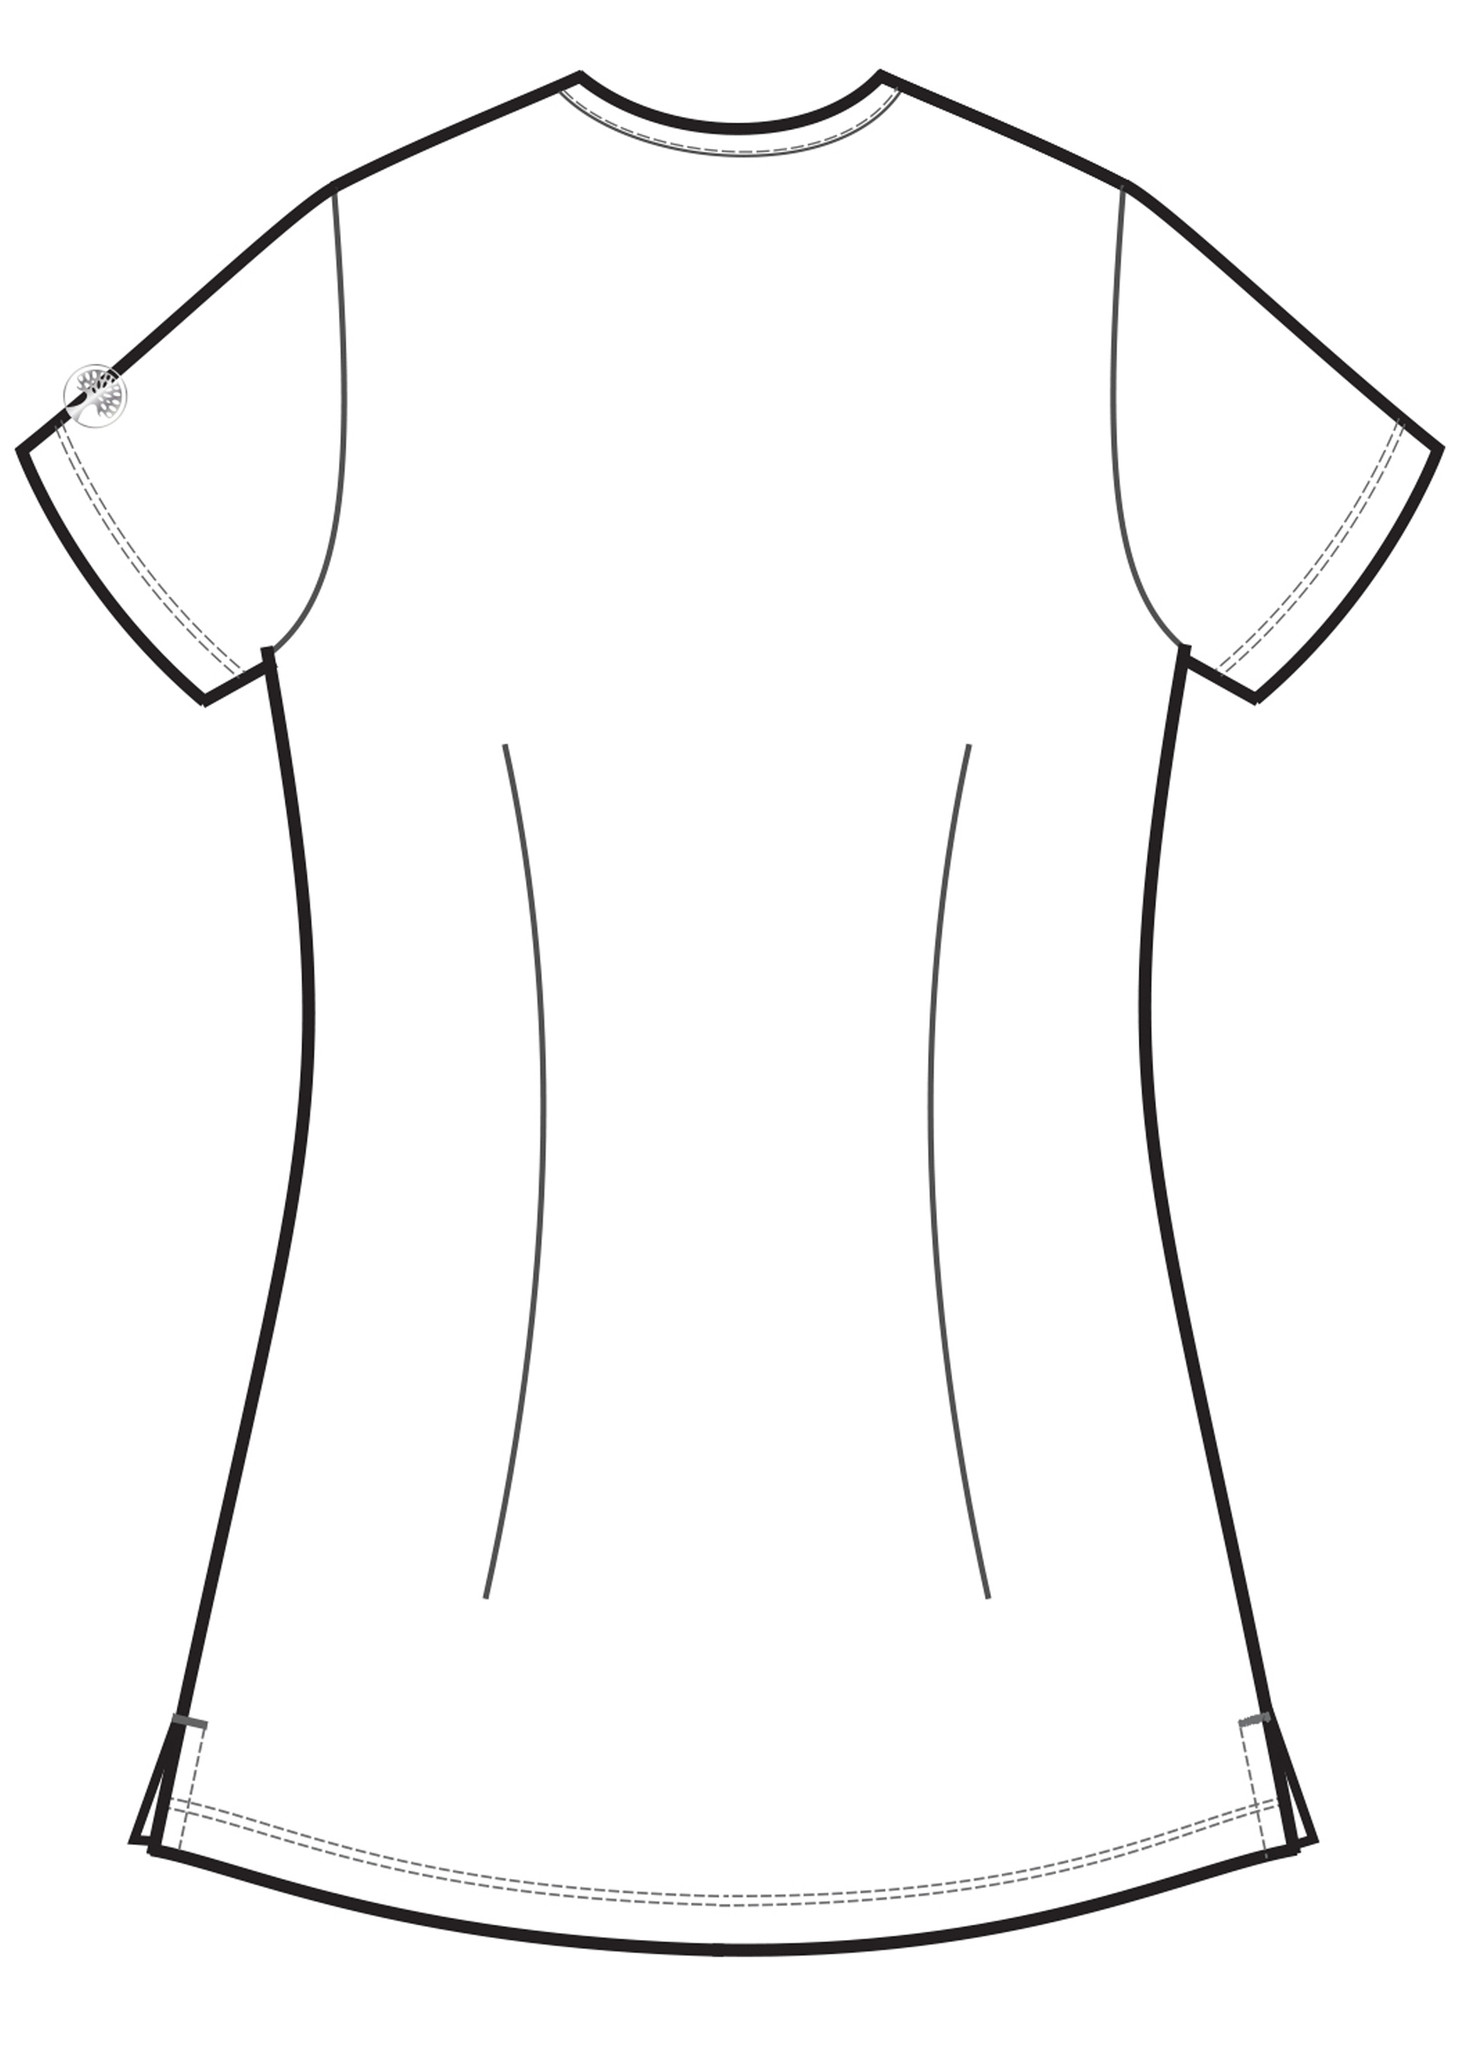 Healing Hands HH Works 2500 Monica Women's Scrub Top with v-neck, princess seams, and two pockets, spandex stretch and four way stretch. Line art image back.